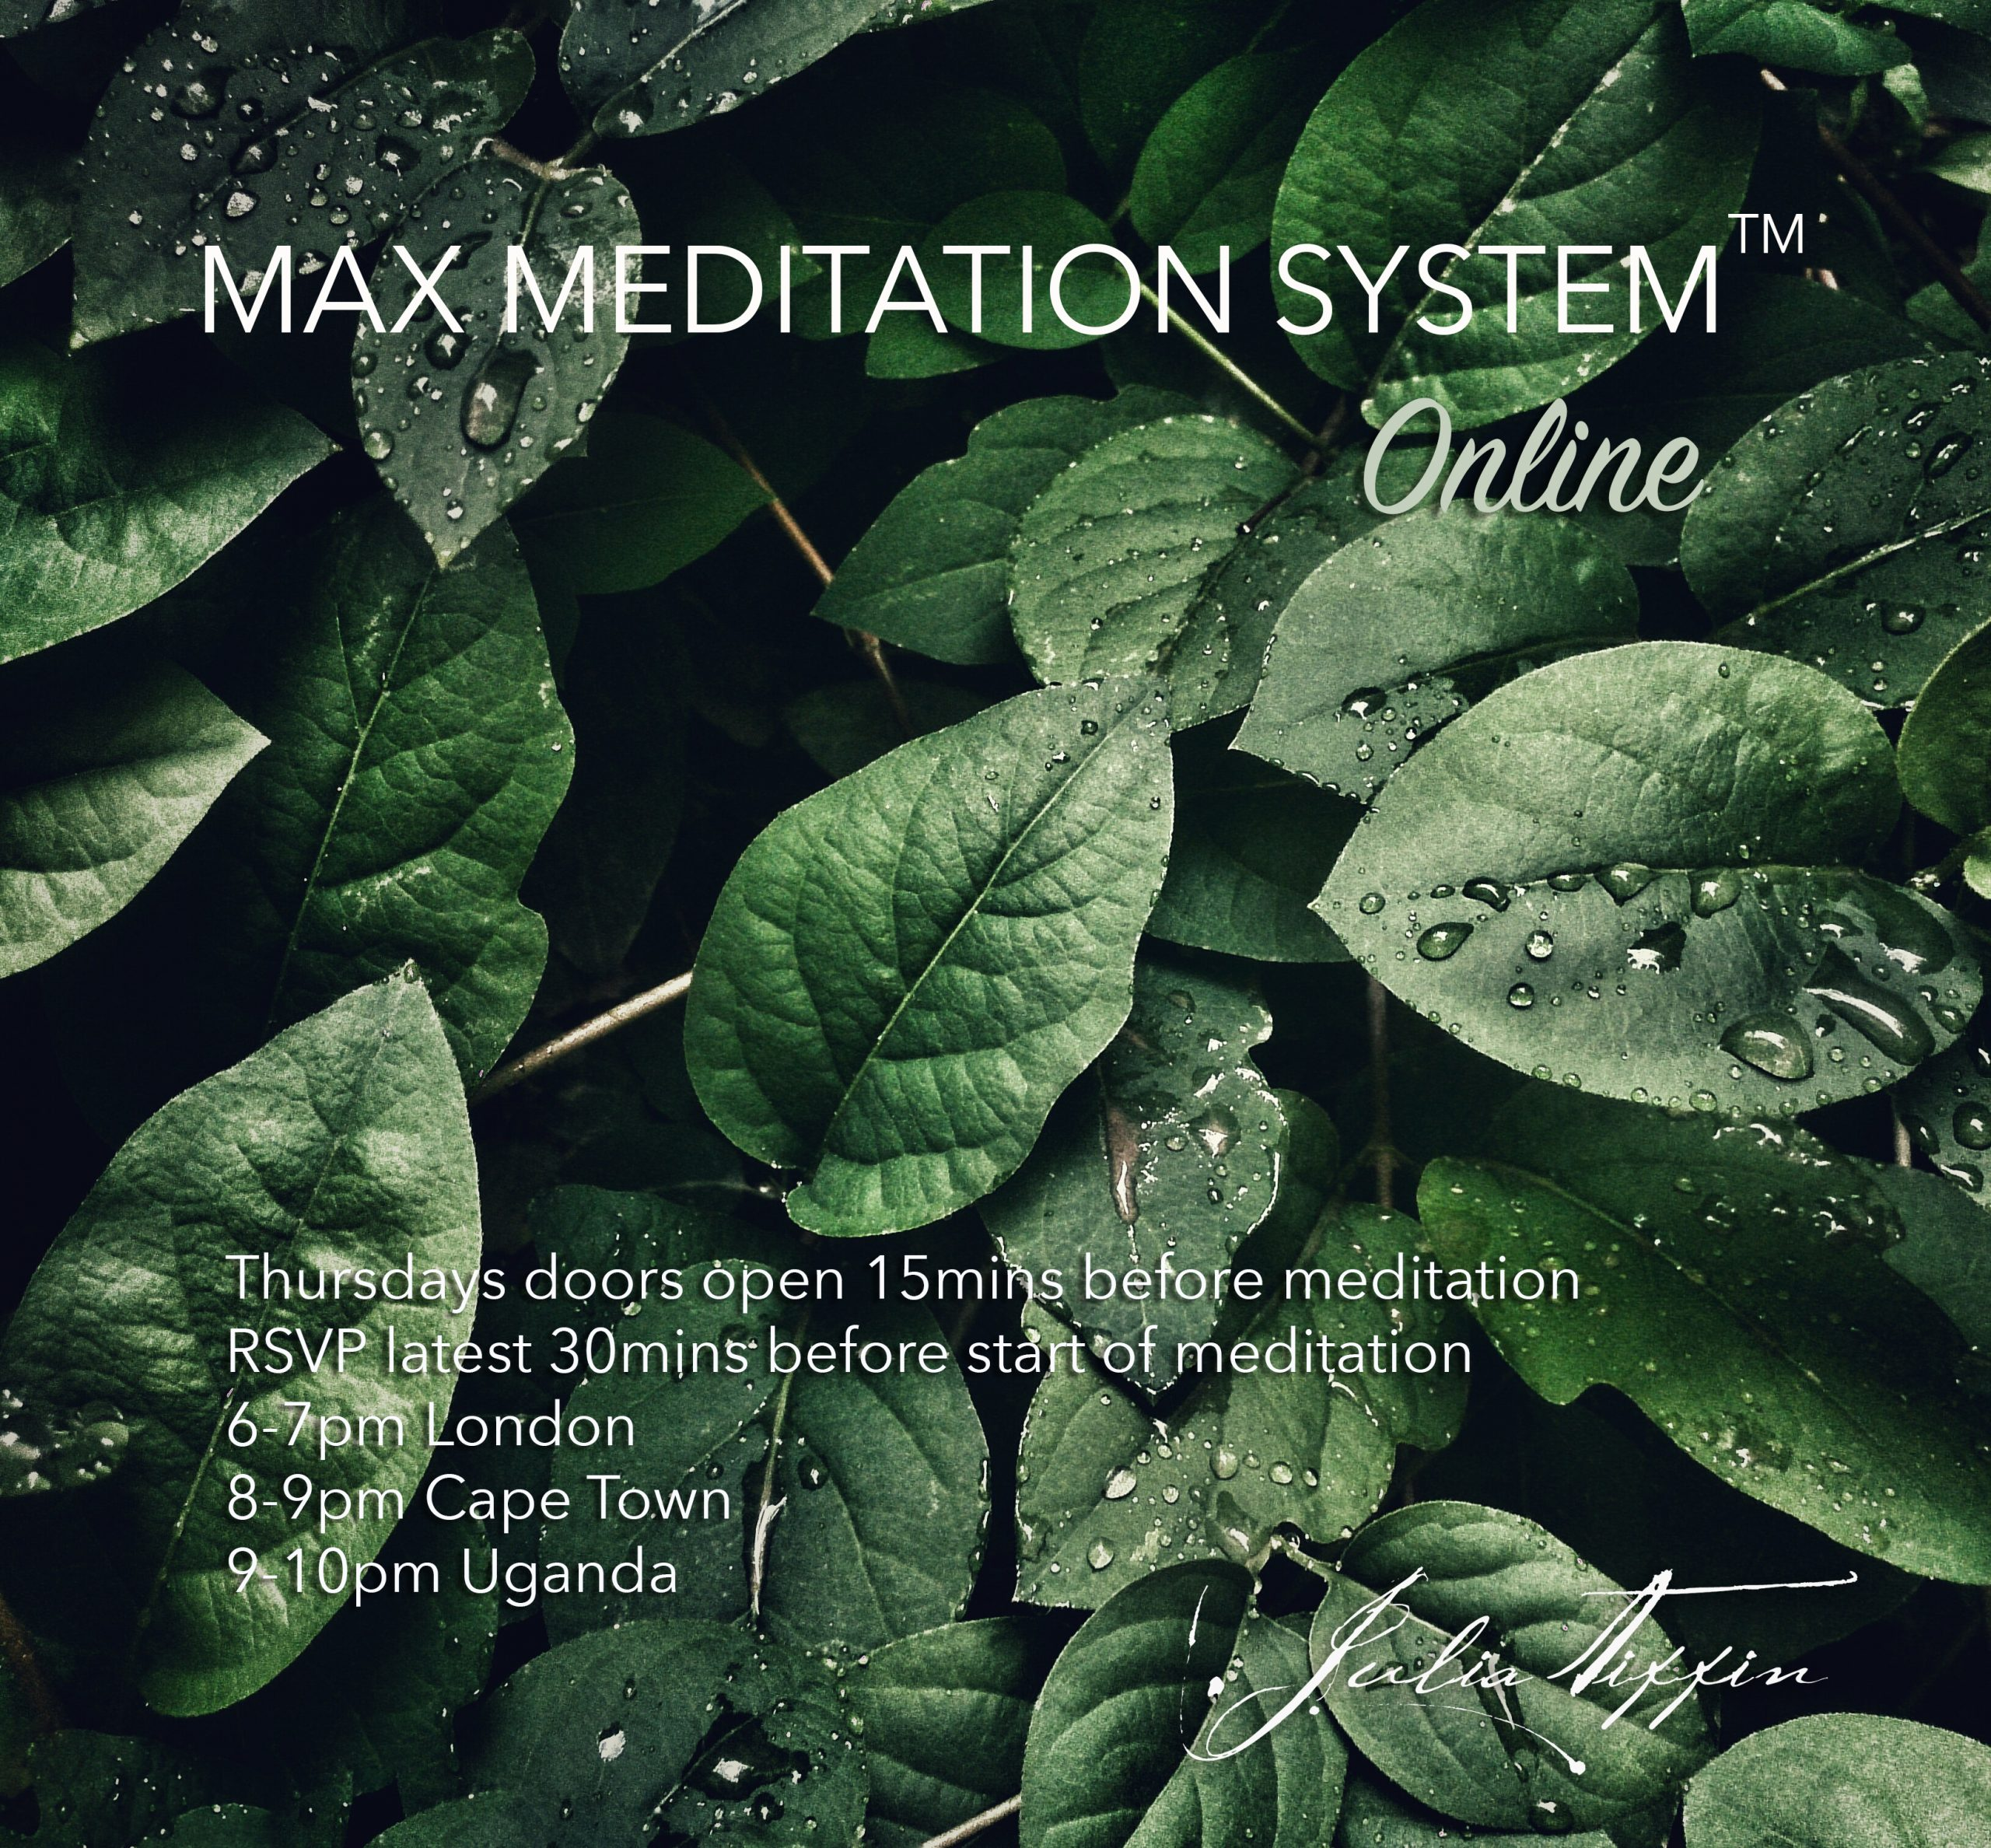 Max Meditation System™ @ Zoom online. RSVP for link latest 30mins before start of meditation. Doors open 15mins before meditation.